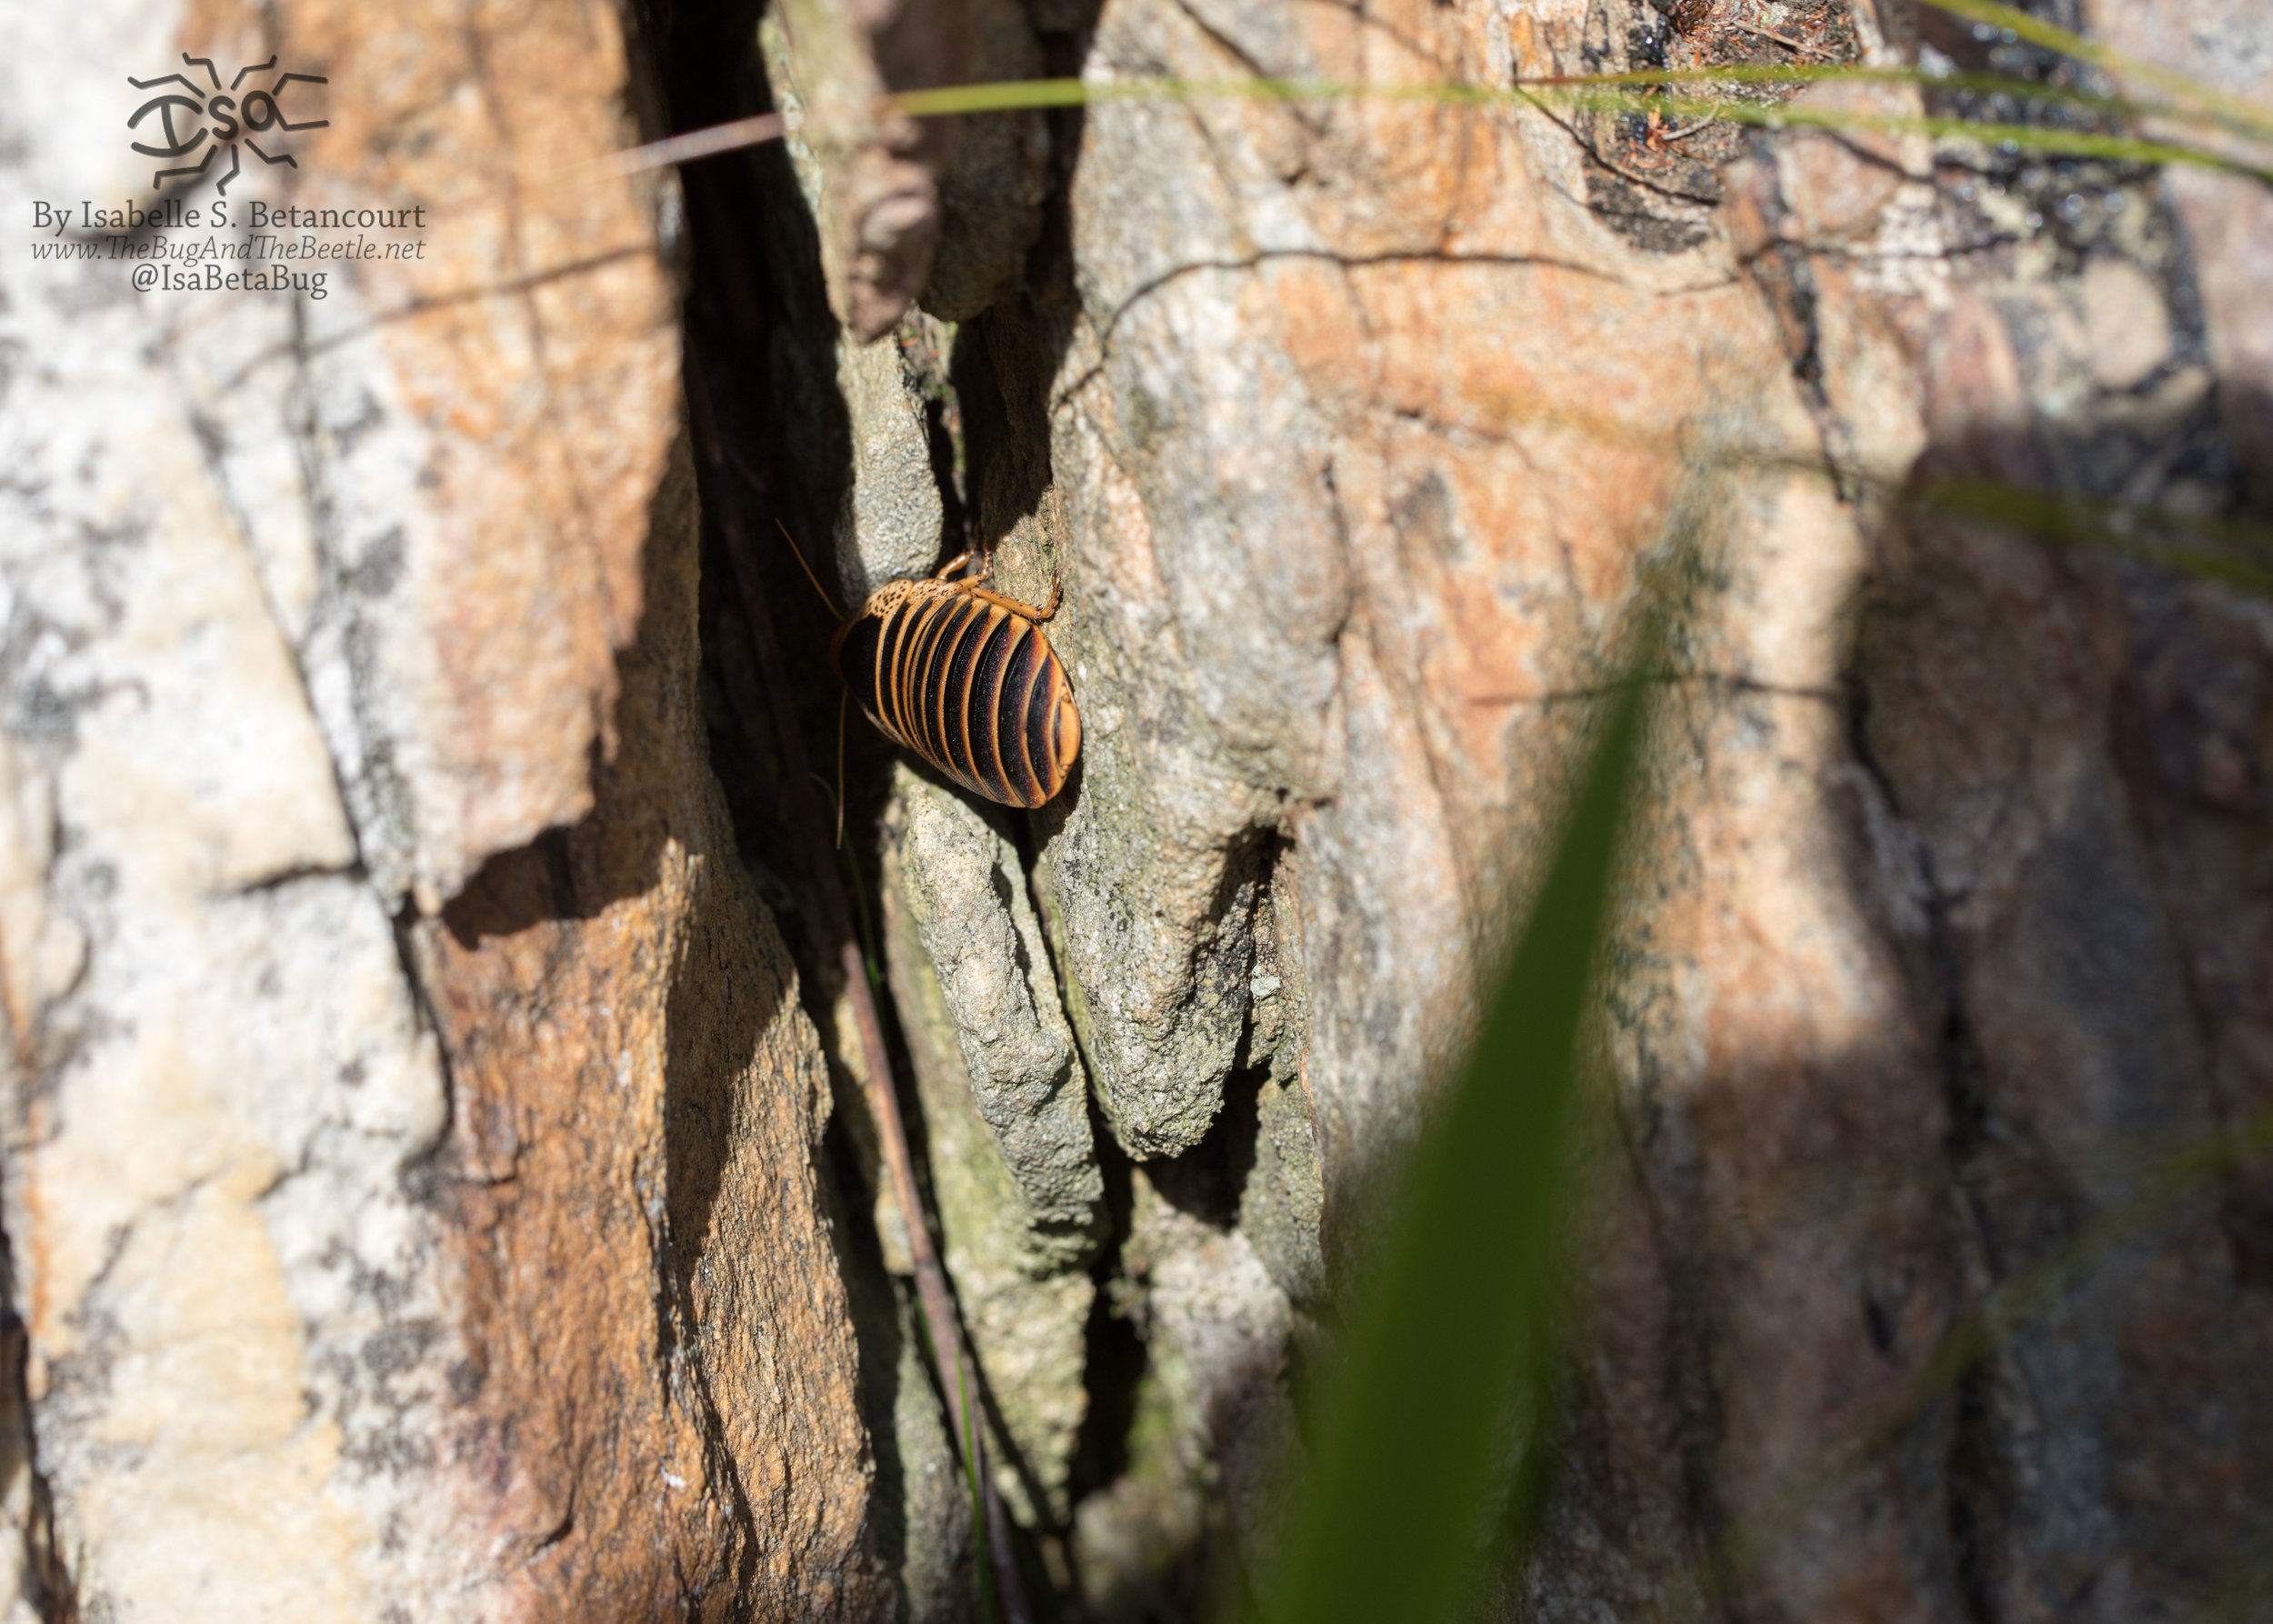 We also found this one between rocks to the side of the trail in Stellenbosch, South Africa. (in situ)